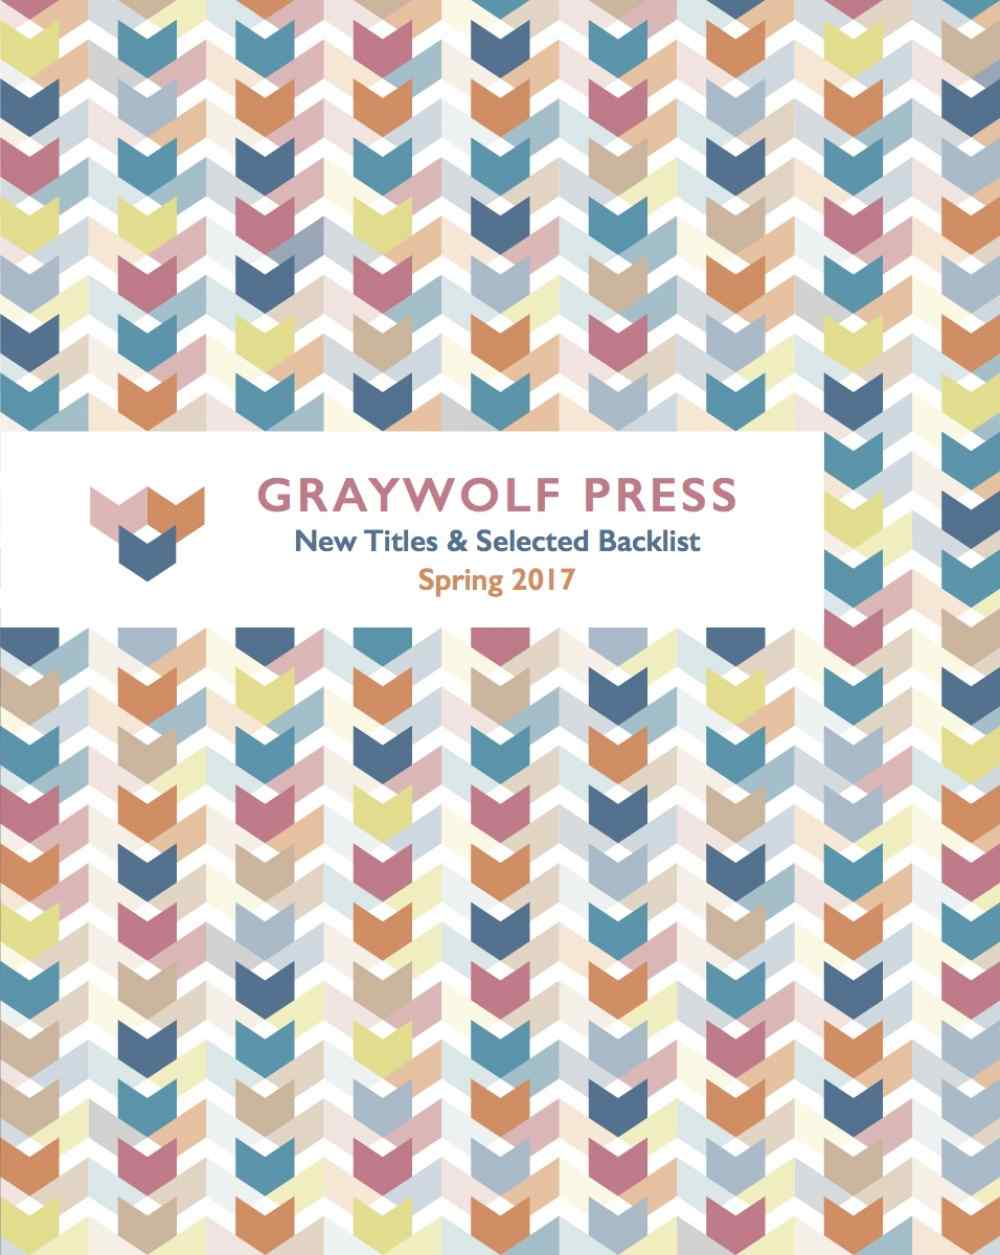 Spring 2017 Graywolf Press Catalog Cover